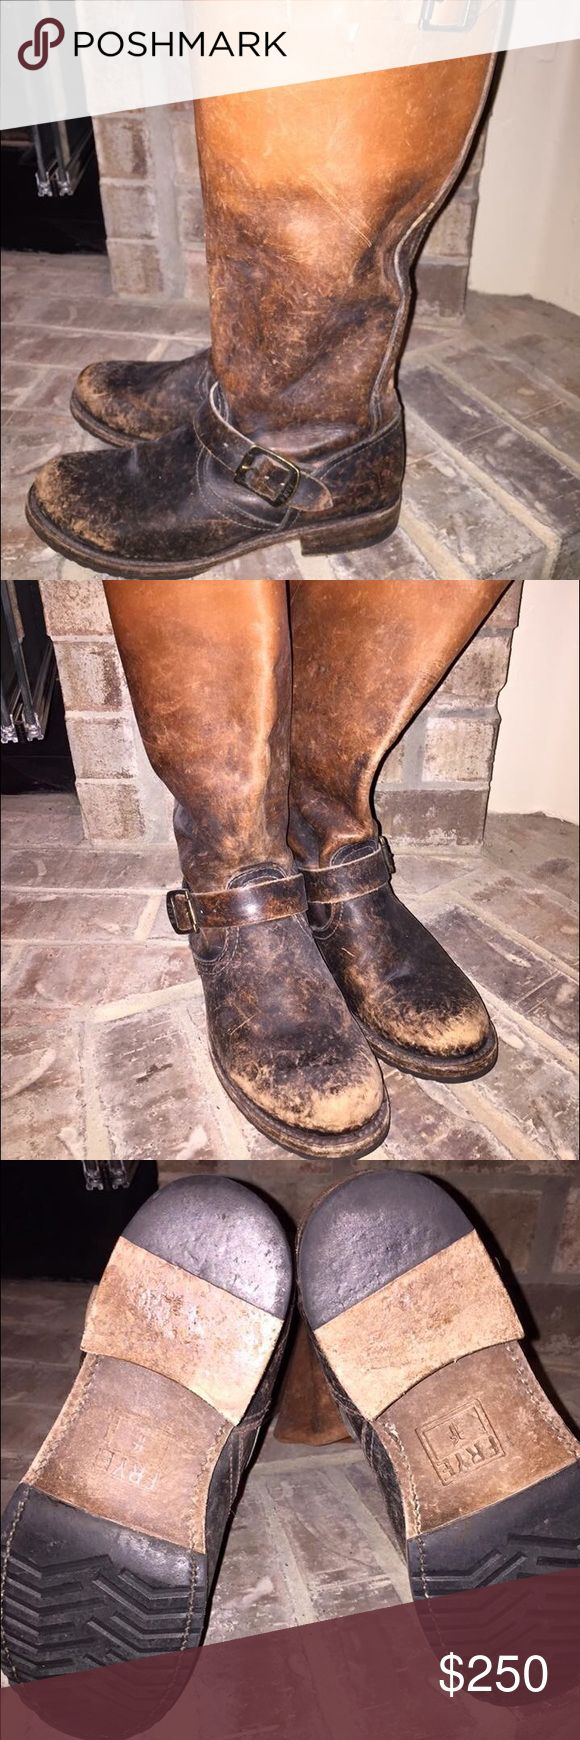 Frye riding boots Frye riding boots, only wore a few times. Basically new, smoke and pet free home. Frye Shoes Heeled Boots